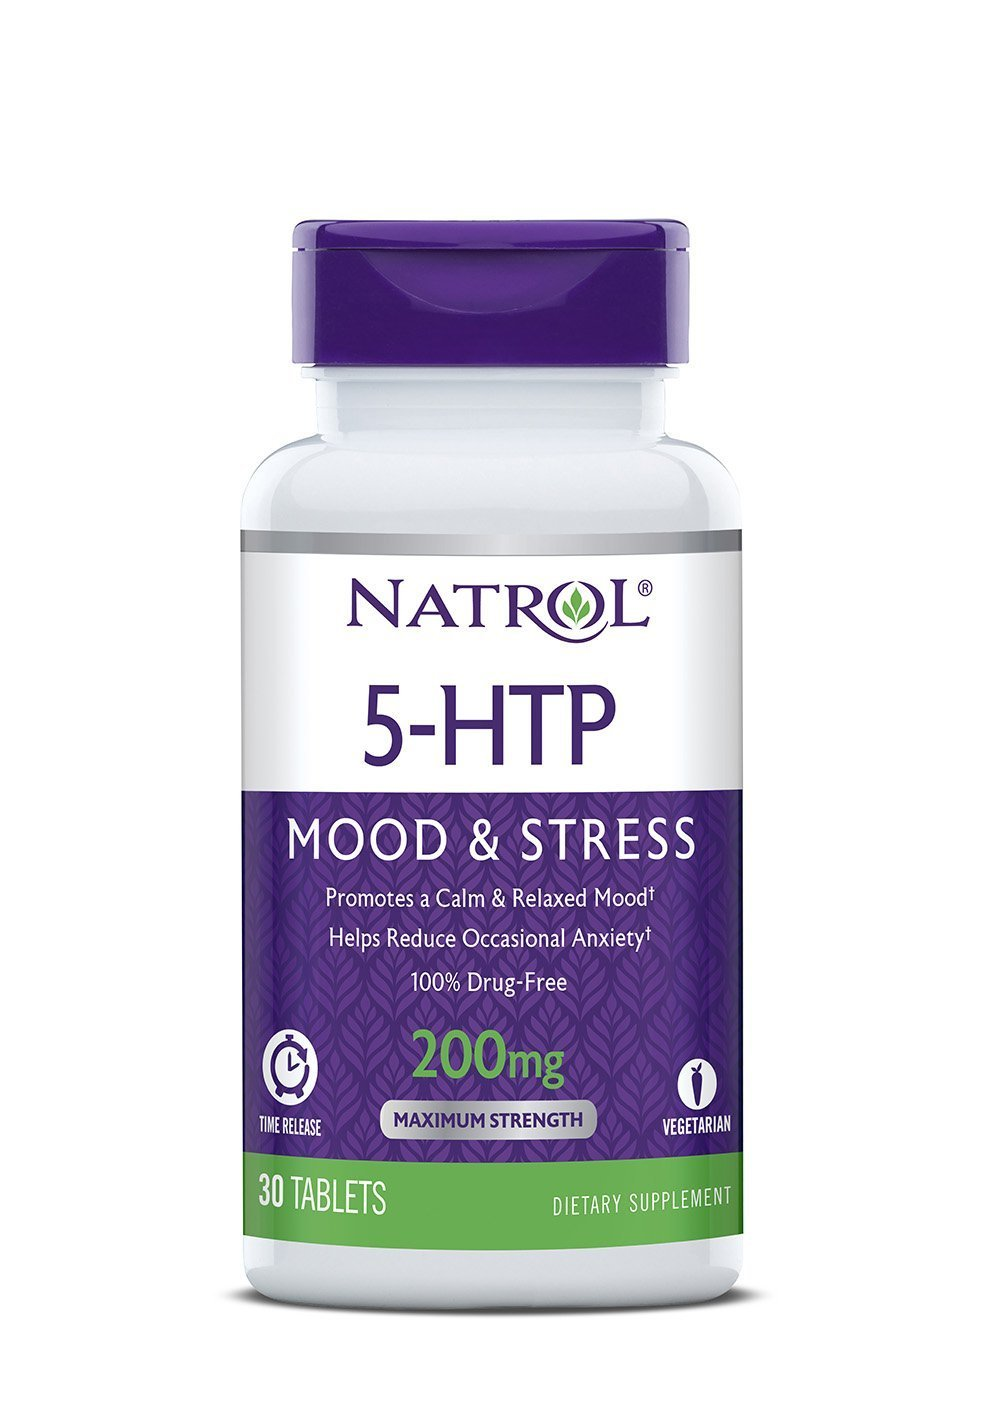 Natrol 5-HTP Mood and Stress, 200mg, 60 Tablets